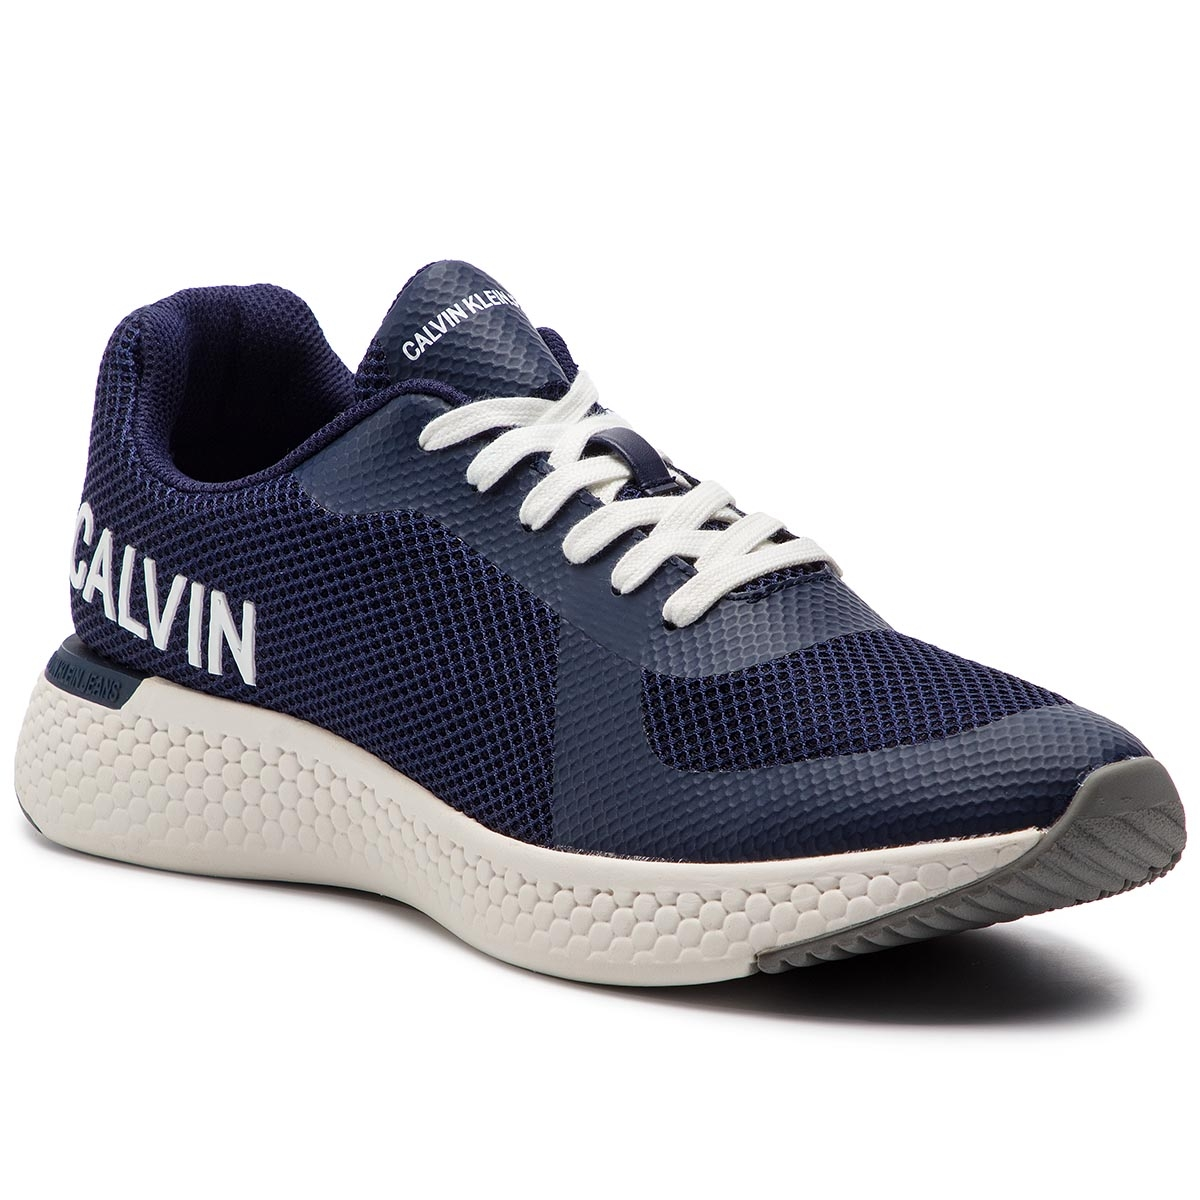 Image of Sneakers CALVIN KLEIN JEANS - Amos S0584 Navy